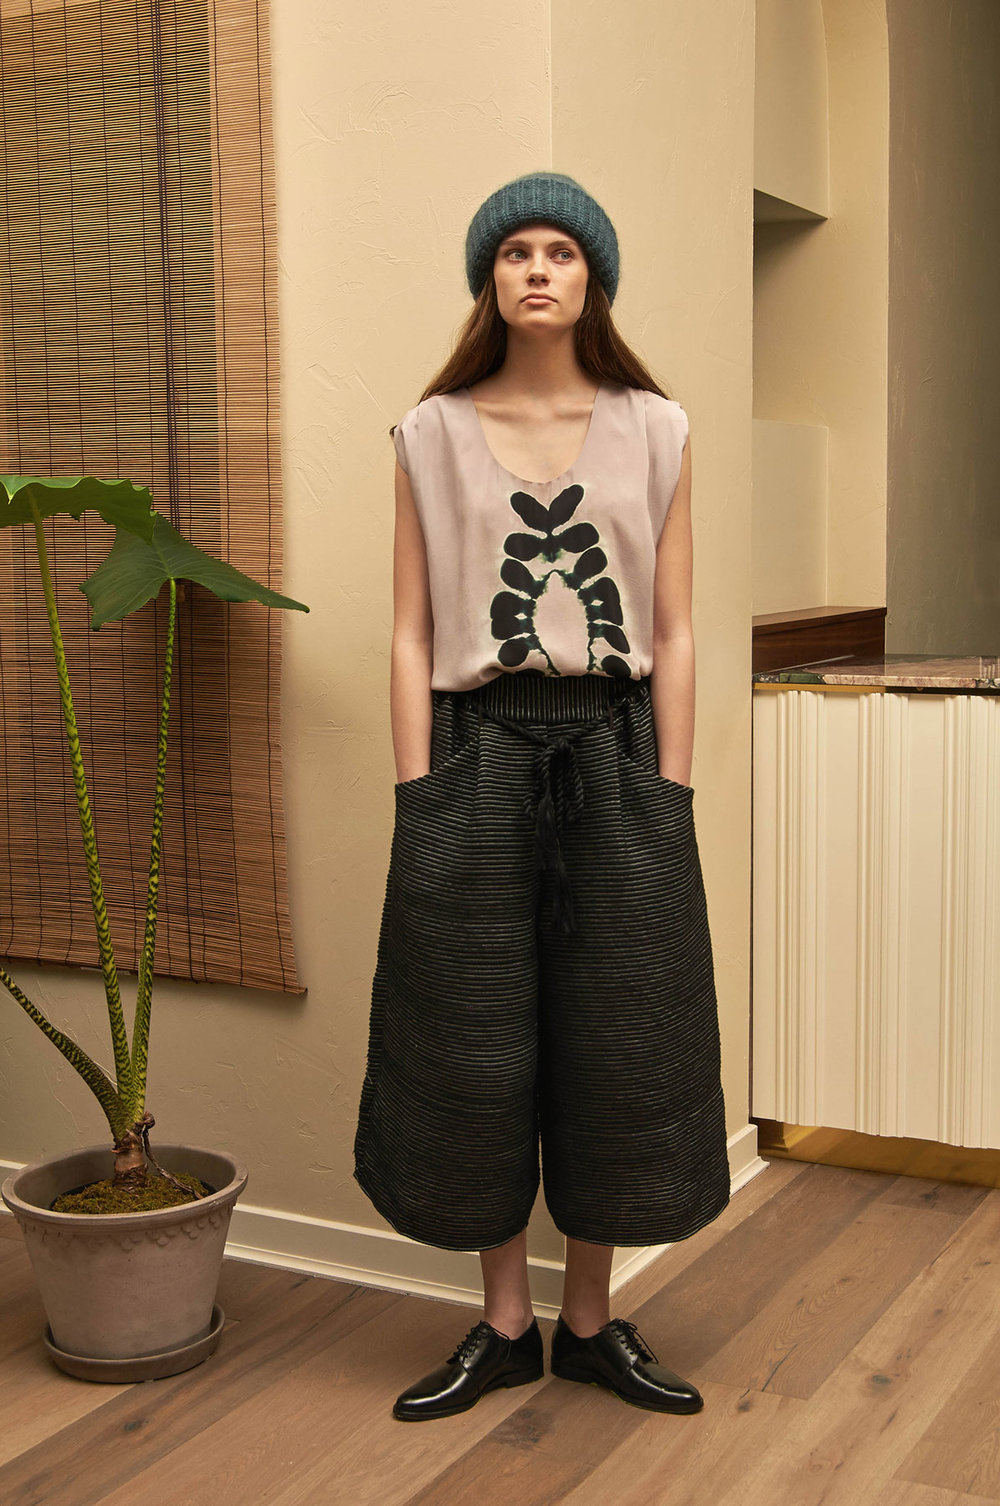 Albelia Shirt by 11.11. eleven eleven, Dhurr Pants by 11.11 eleven eleven, Tela Cuff by Erin Considine